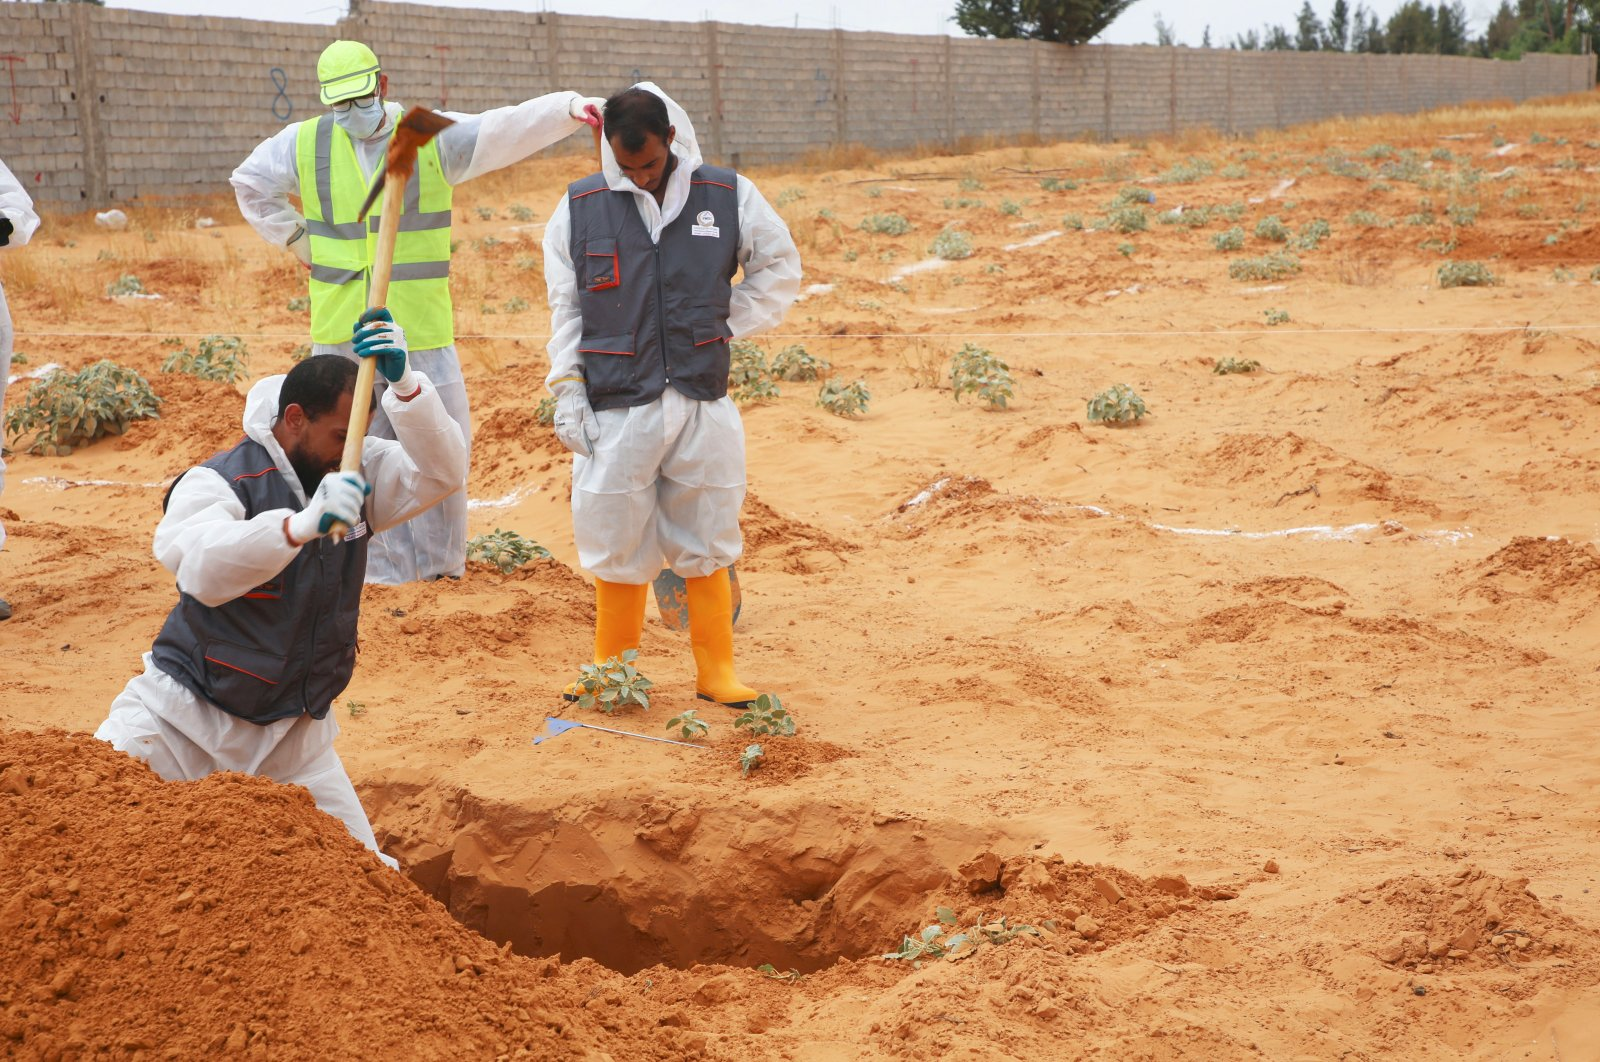 Libyan Ministry of Justice employees dig out at a site of a suspected mass grave in the town of Tarhouna, Libya, Tuesday, June 23, 2020. (AP Photo)